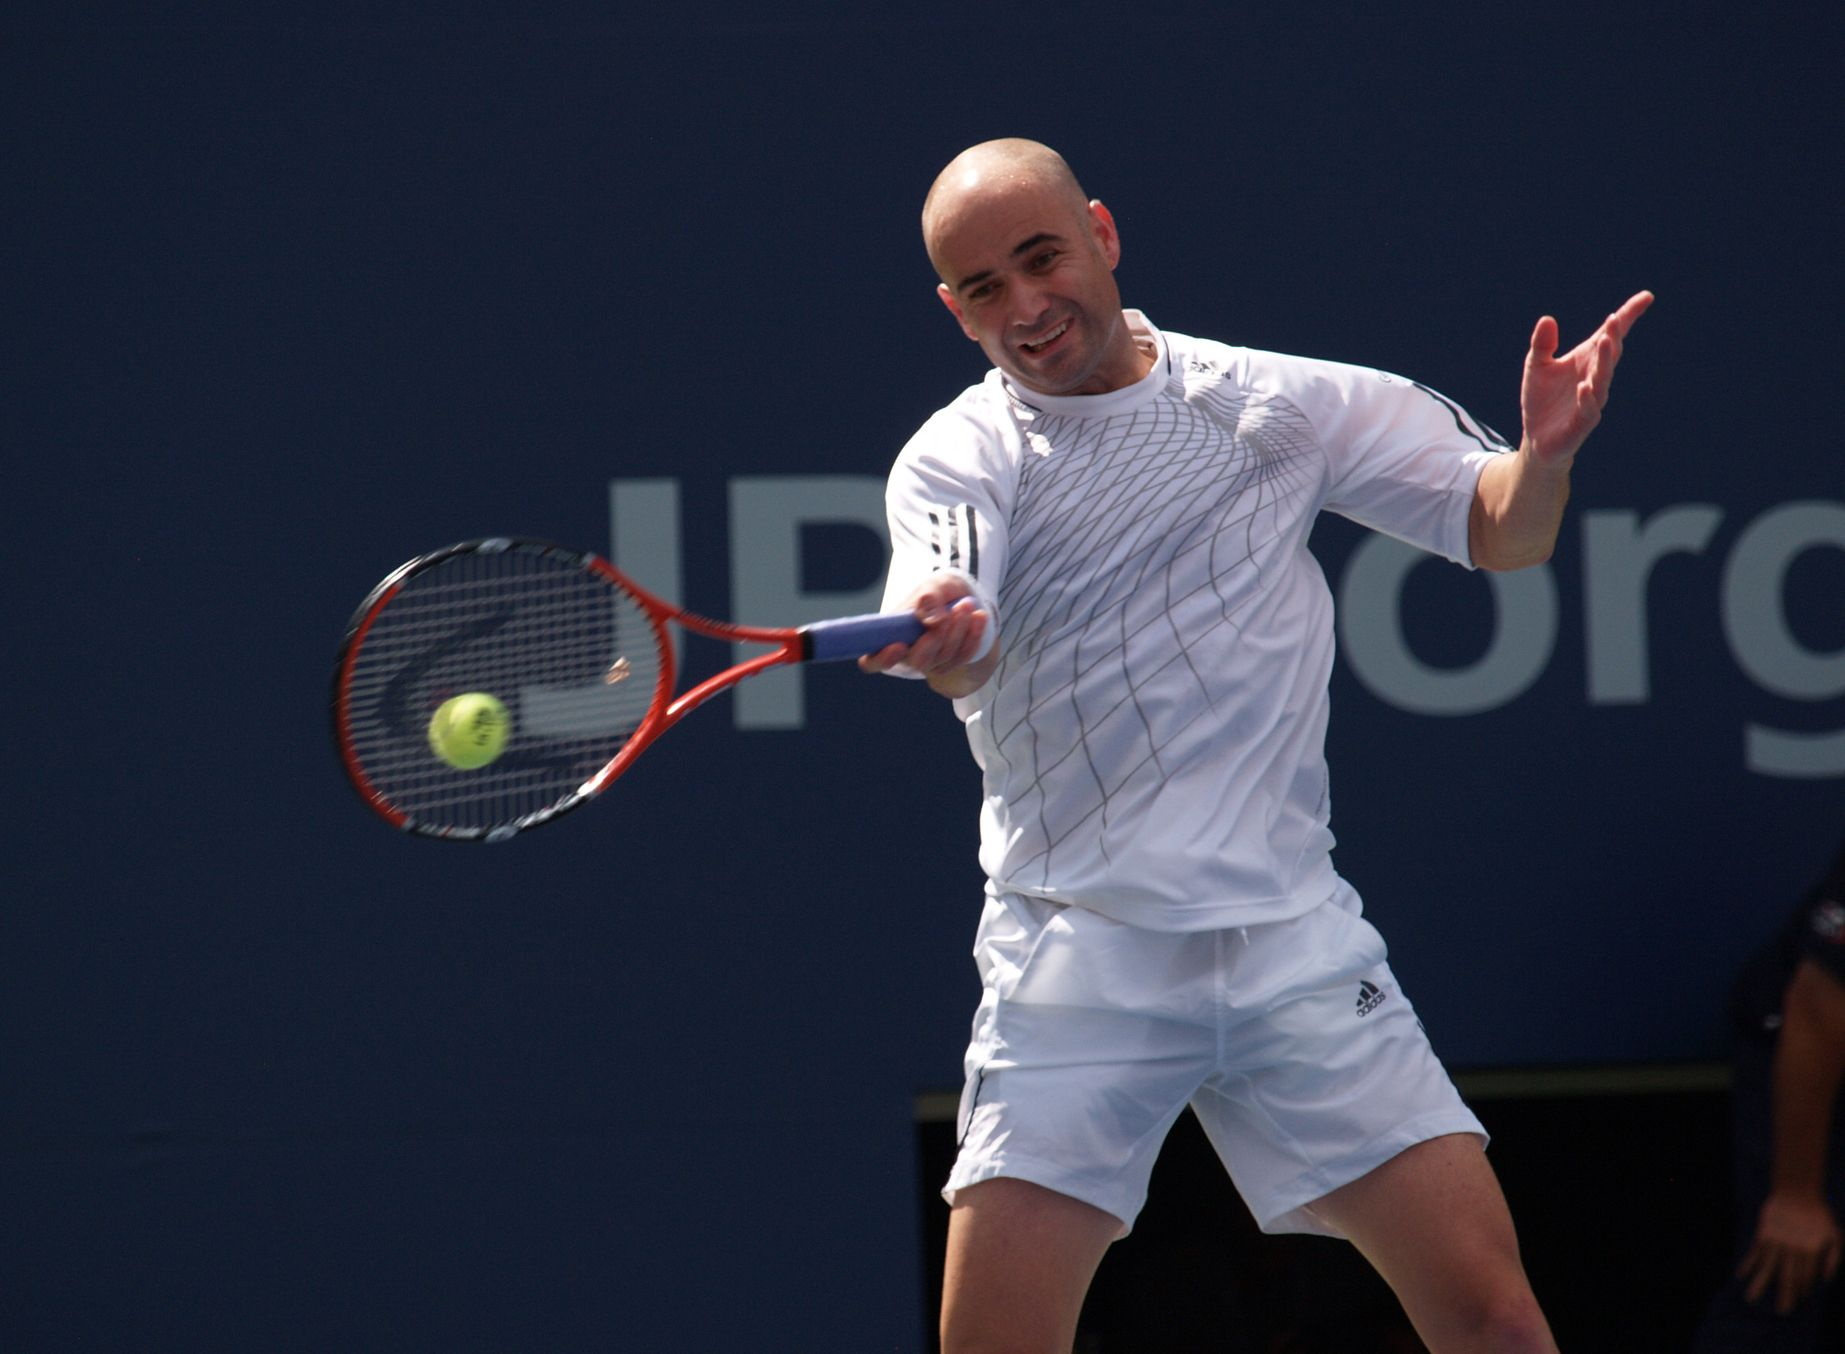 tennis, Andre Agassi,Stefani Graf, father's day